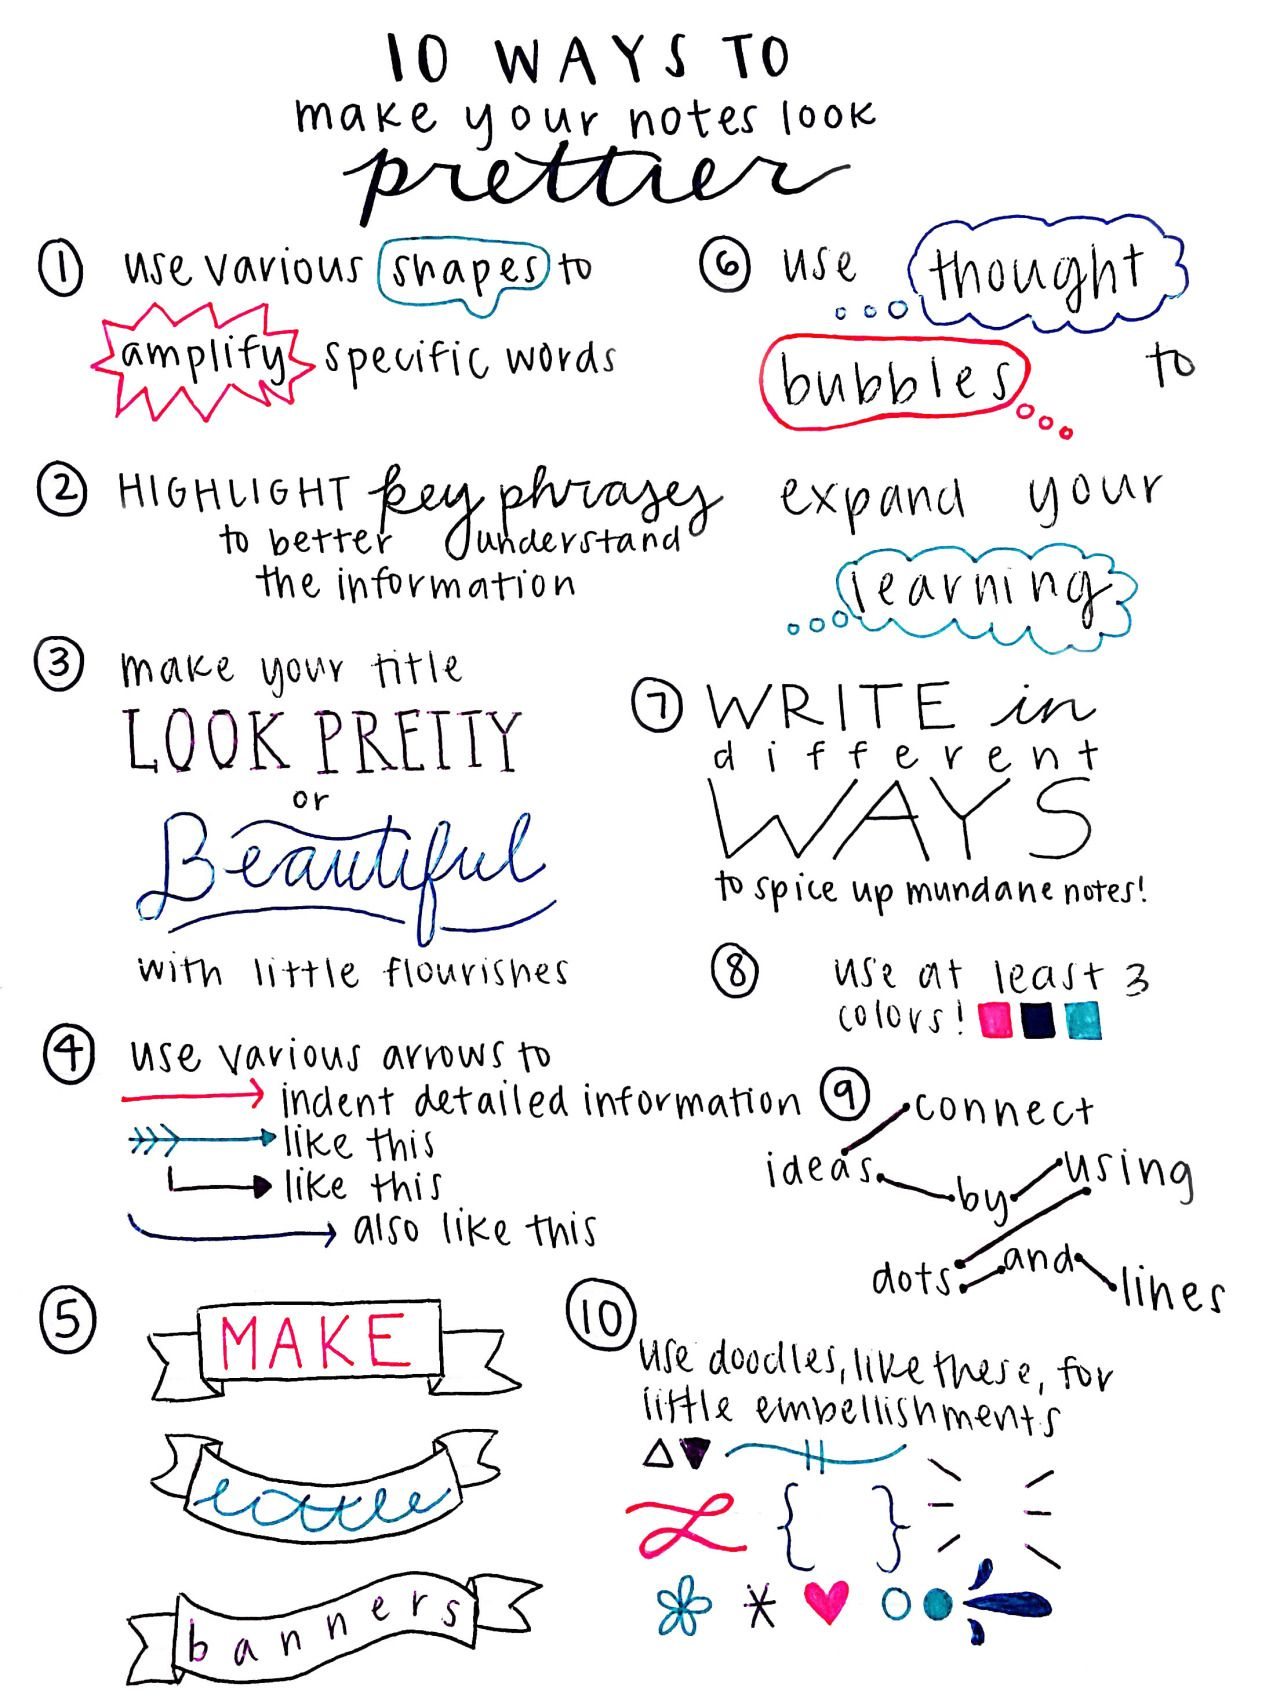 10 ways to make your notes look prettier, a helpful list made by